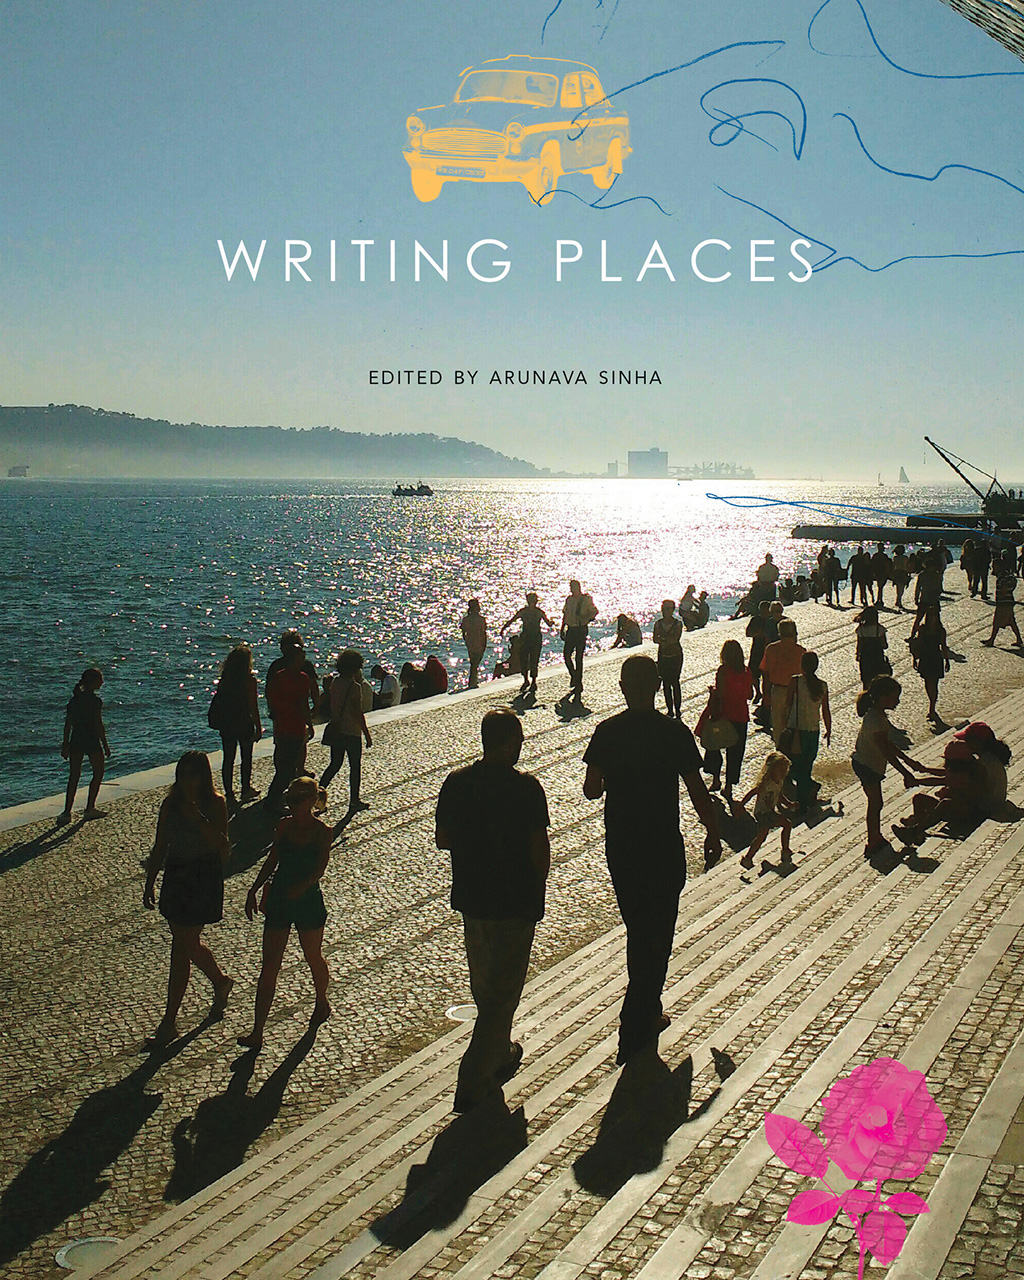 Writing Places: Texts, Rhythms, Images